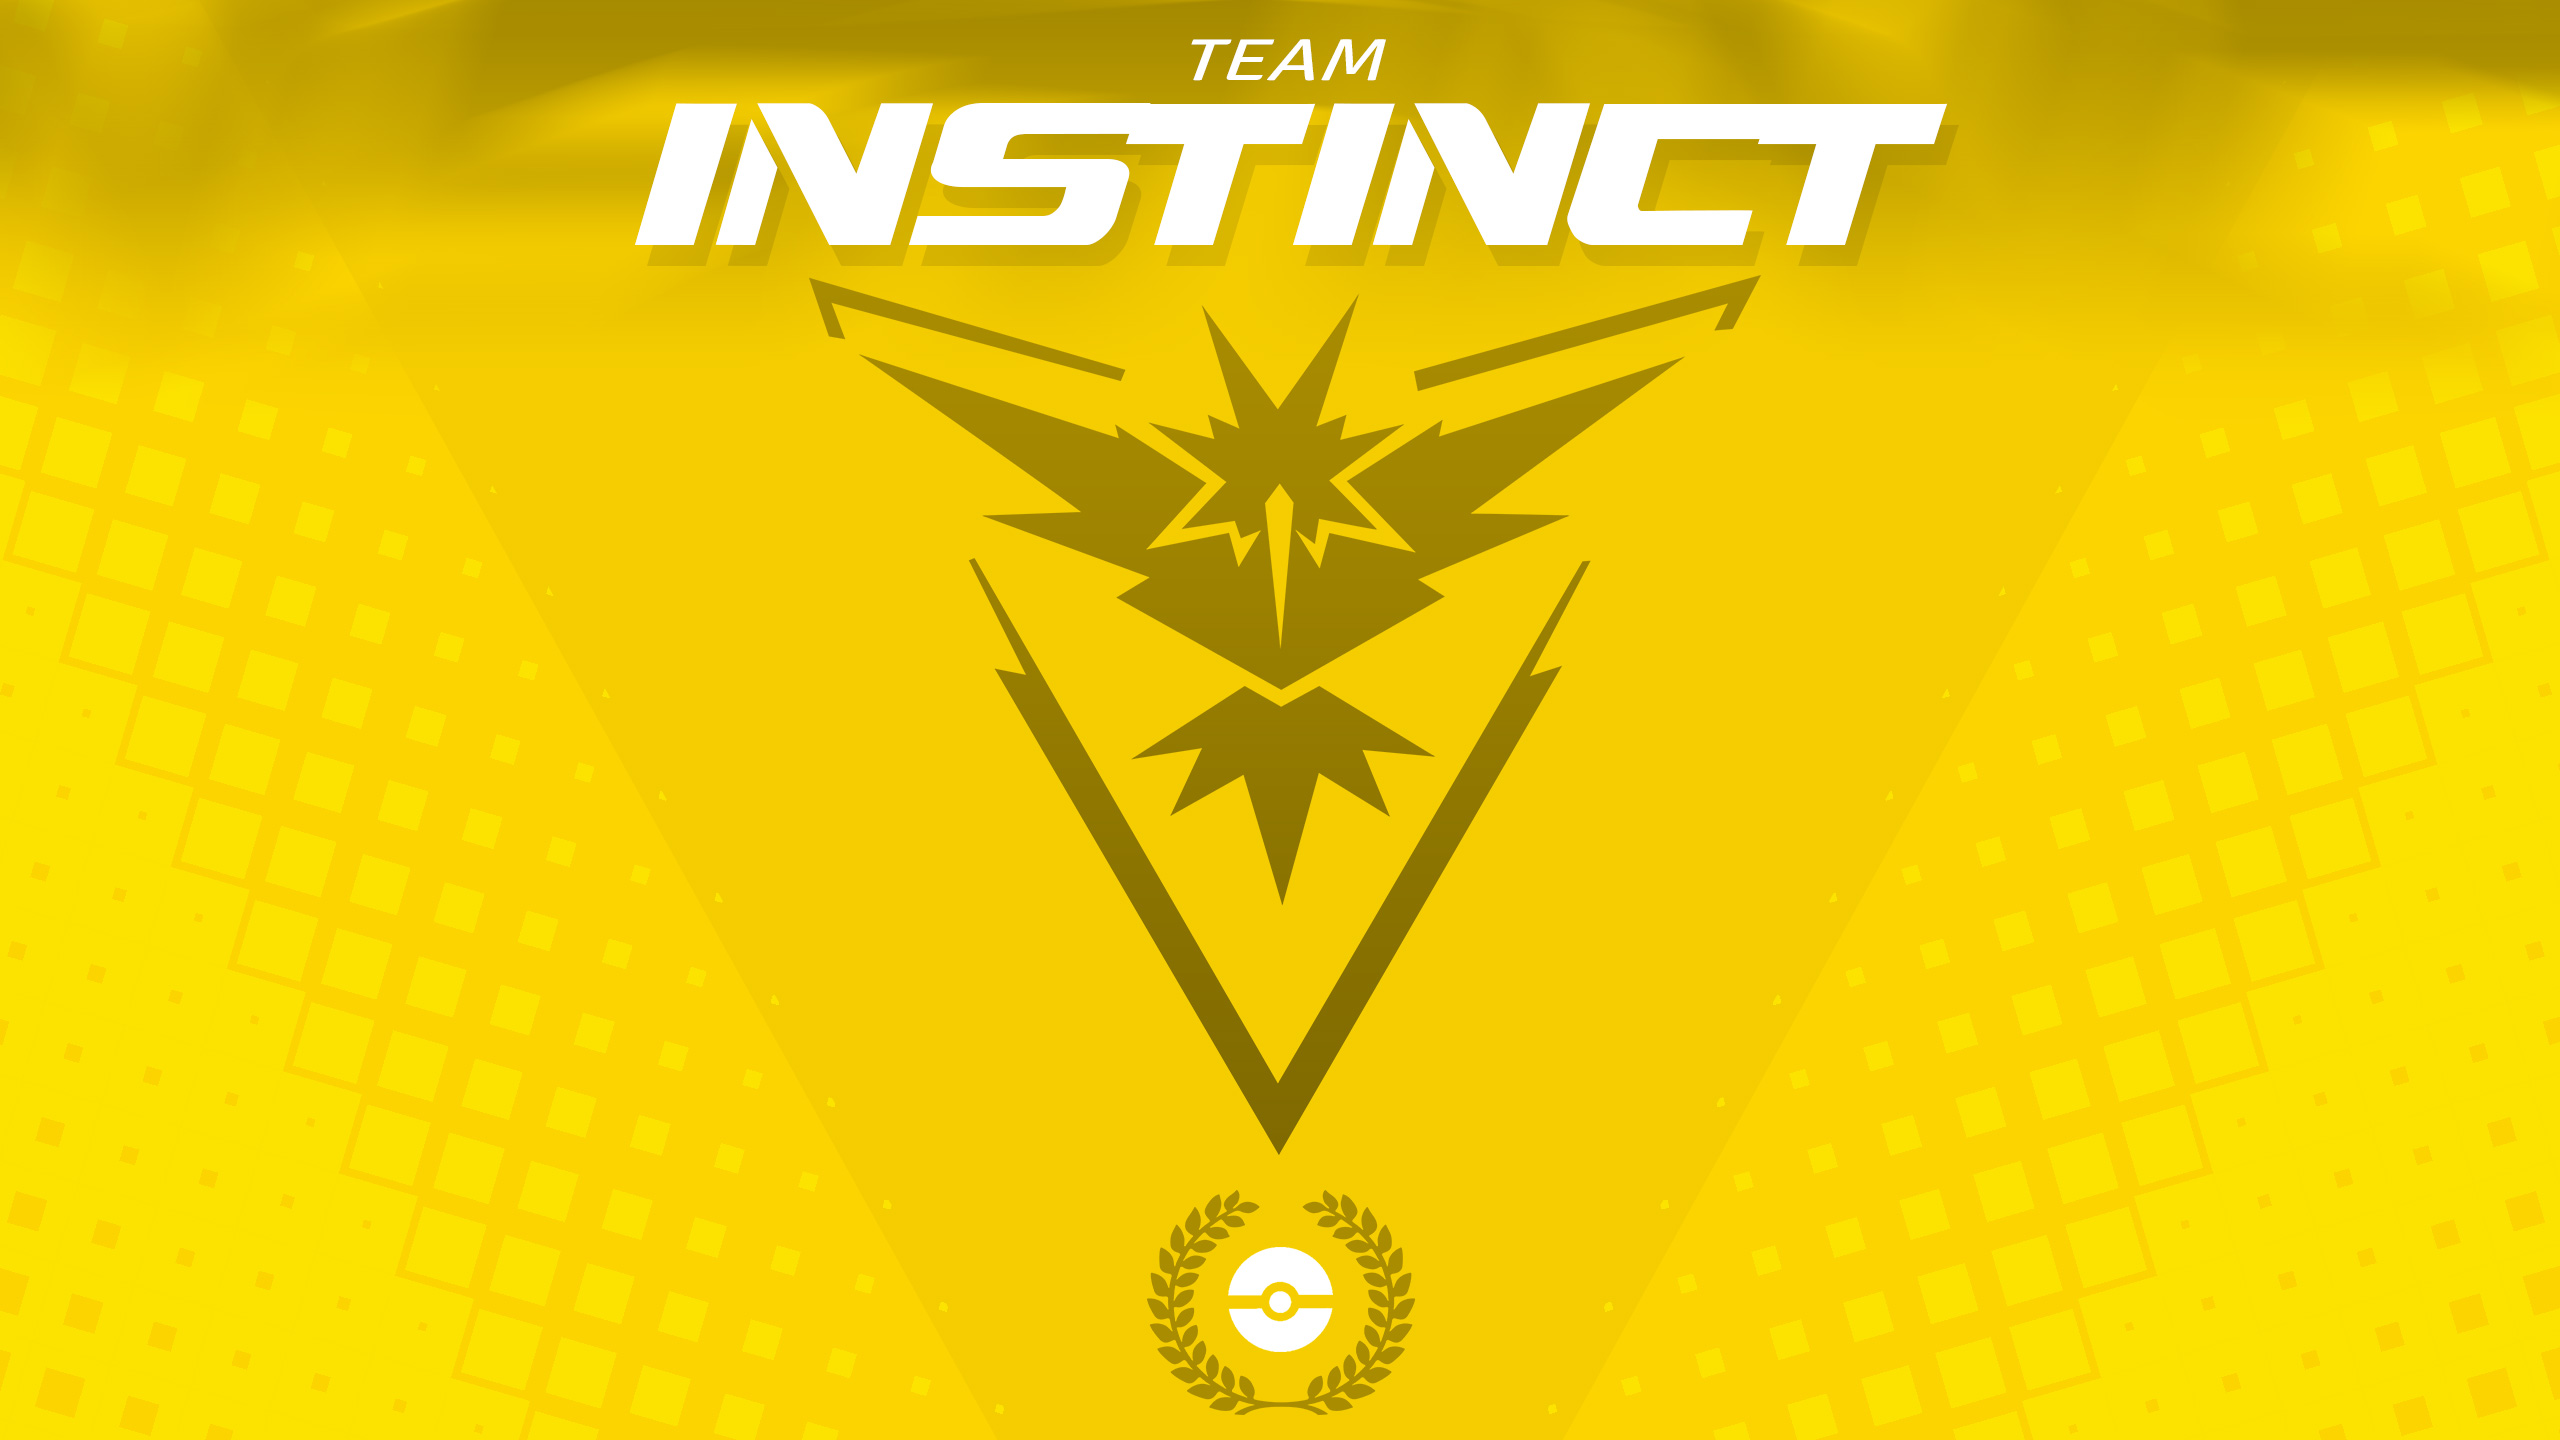 Team Intuition